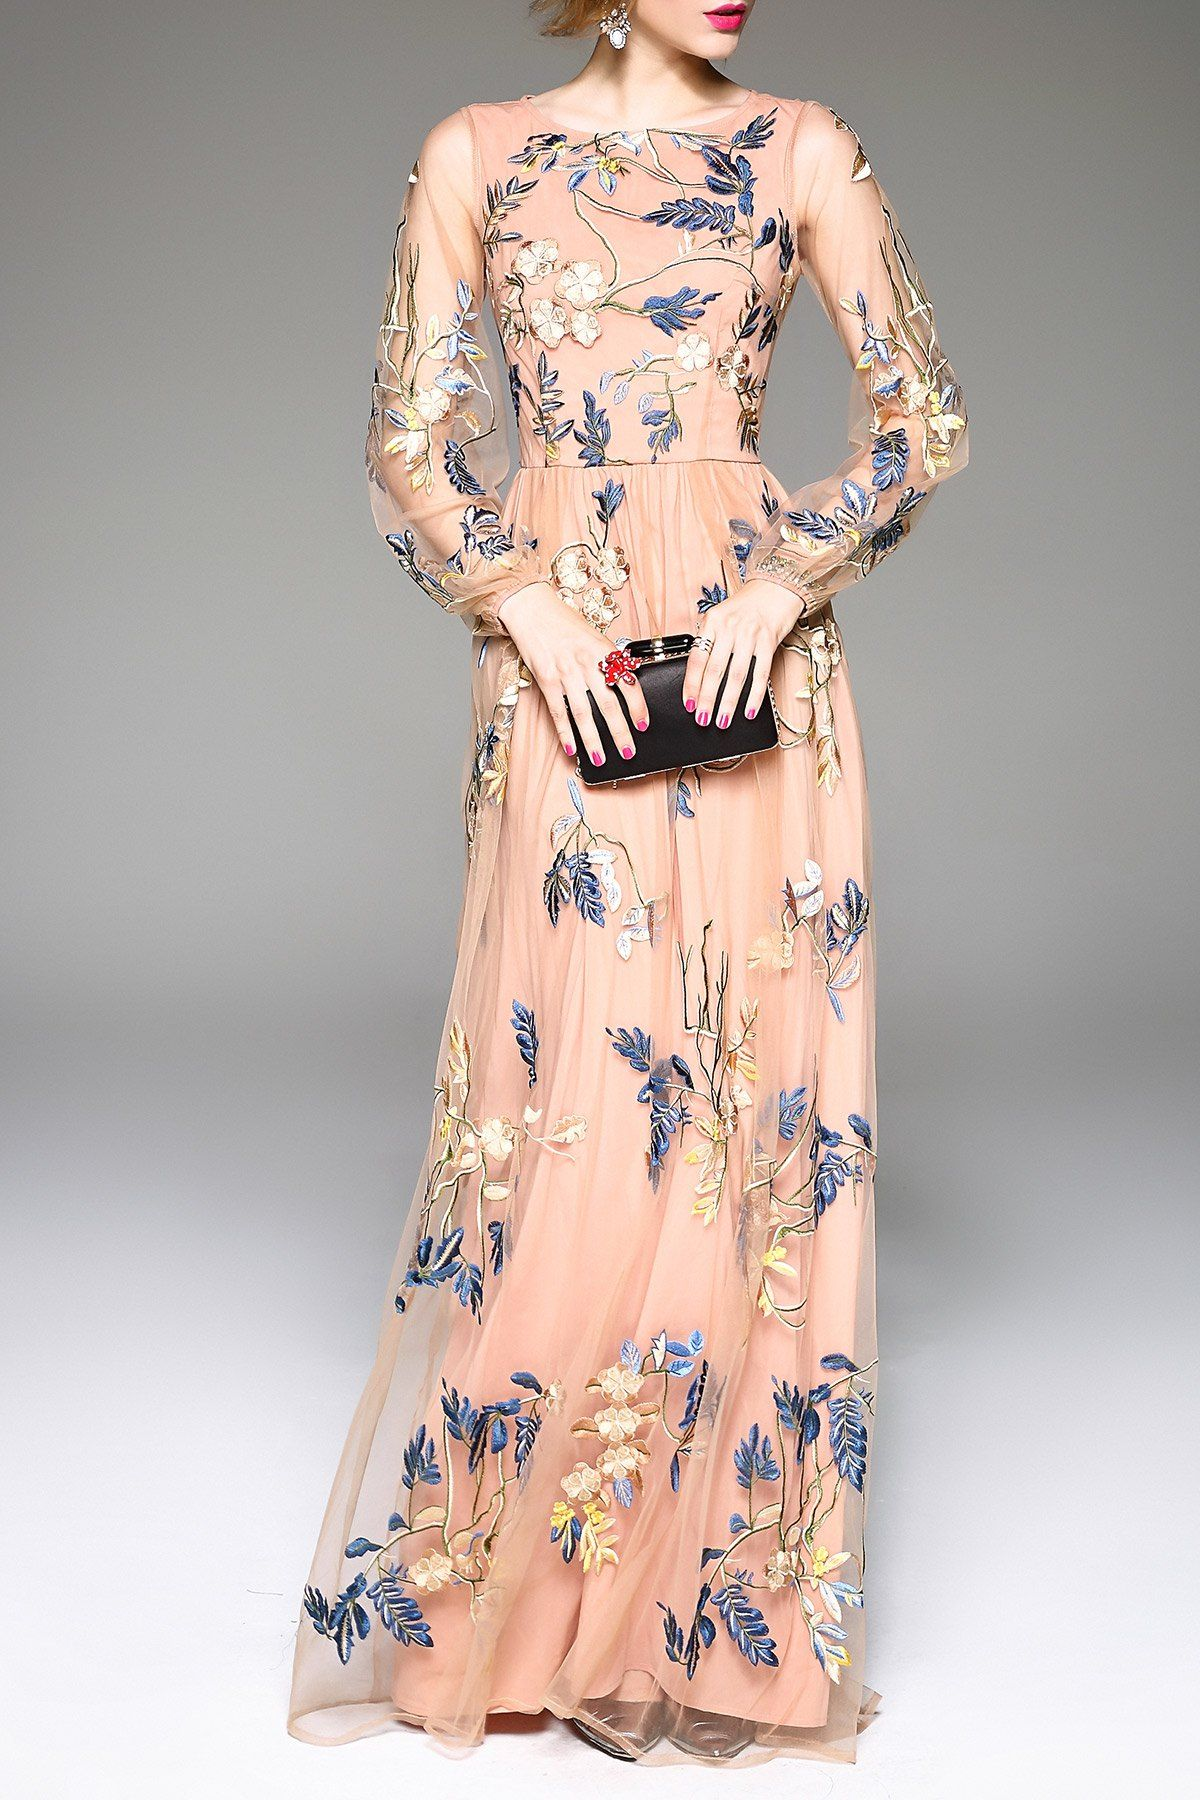 Blacktang pink embroidered gauze spliced prom dress evening